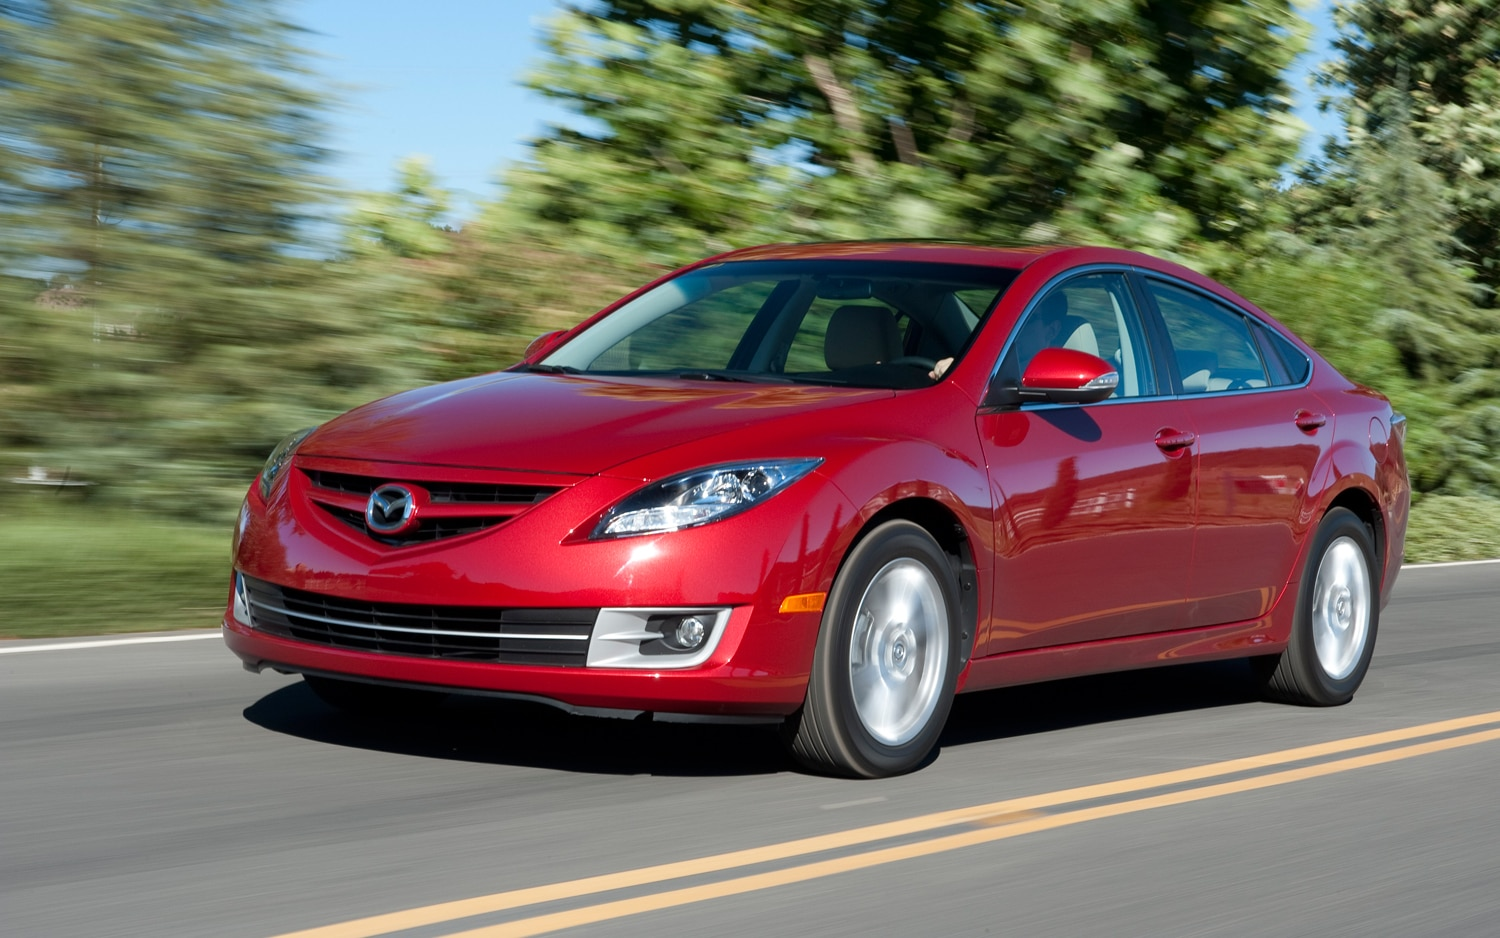 2012 Mazda6 Front Left View1